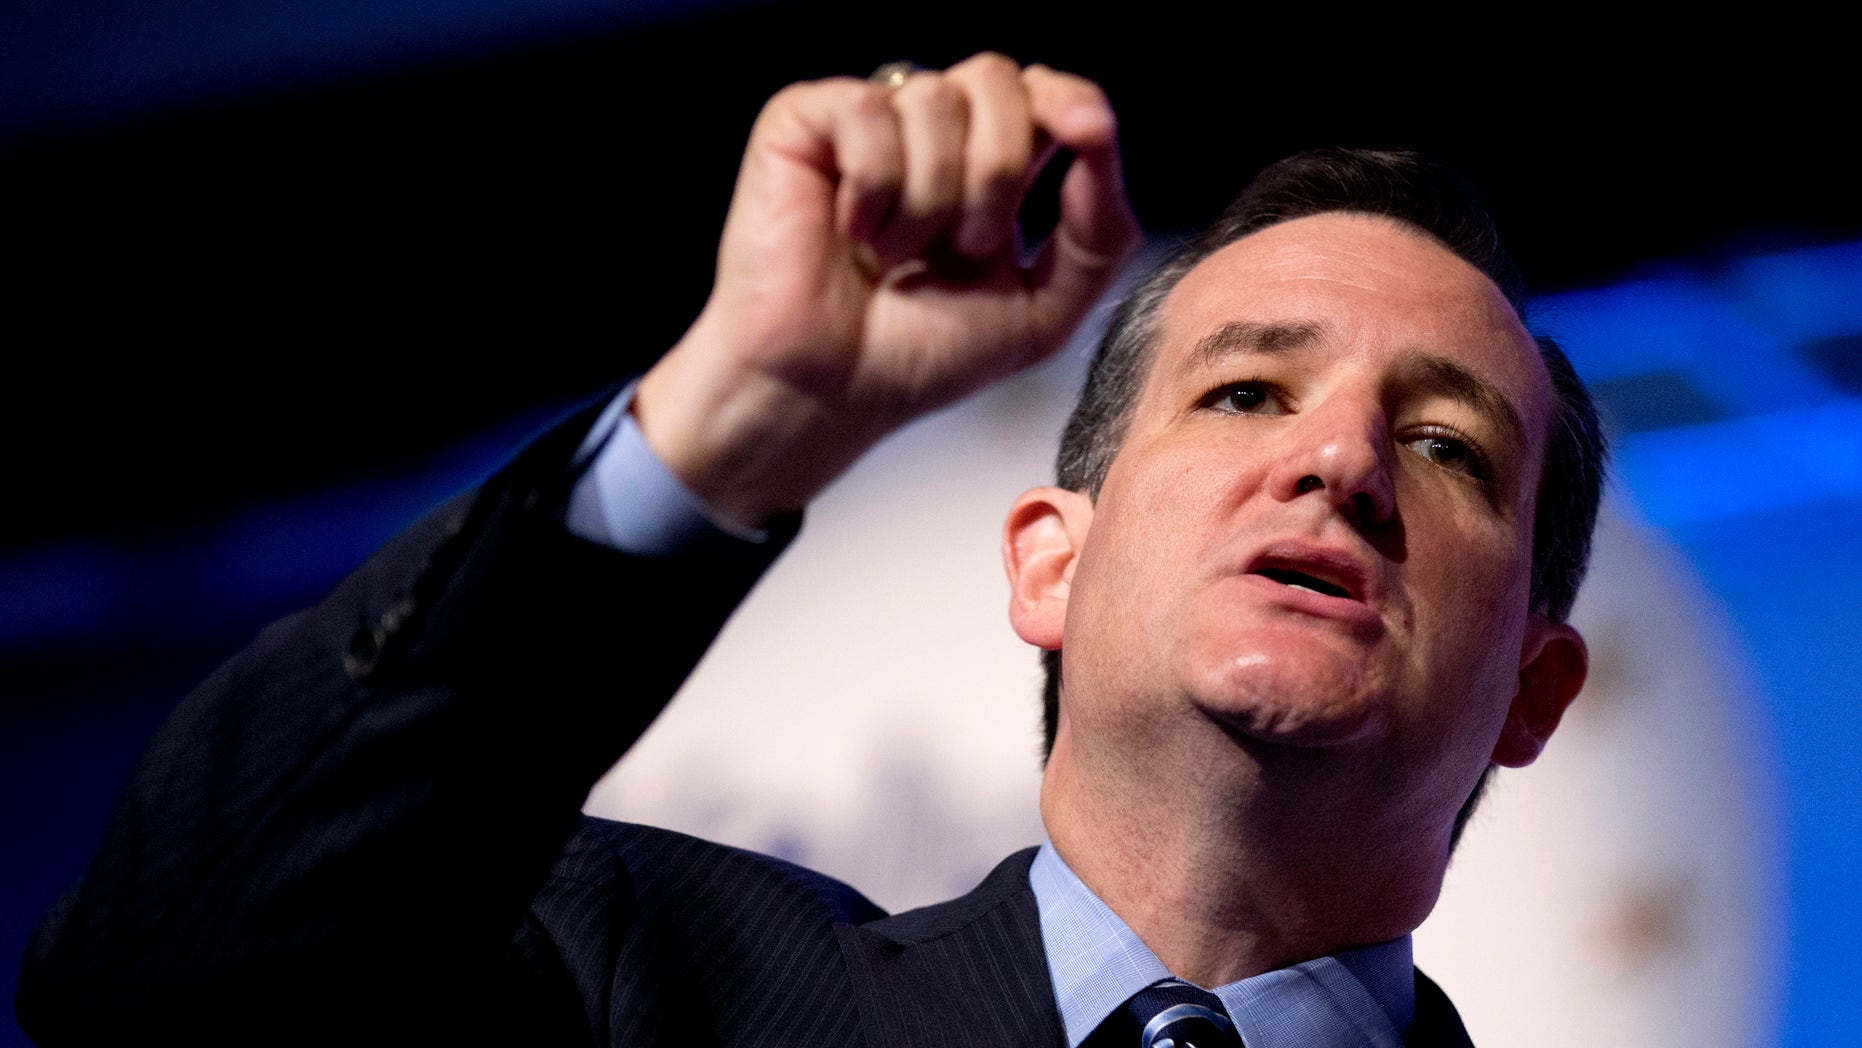 Sen. Ted Cruz, R-Texas speaks at the 2014 Values Voter Summit in Washington, Friday, Sept. 26, 2014. Prospective Republican presidential candidates are expected to promote religious liberty at home and abroad at a gathering of evangelical conservatives, rebuking an unpopular President Barack Obama while skirting divisive social issues that have tripped up the GOP. (AP Photo/Manuel Balce Ceneta)